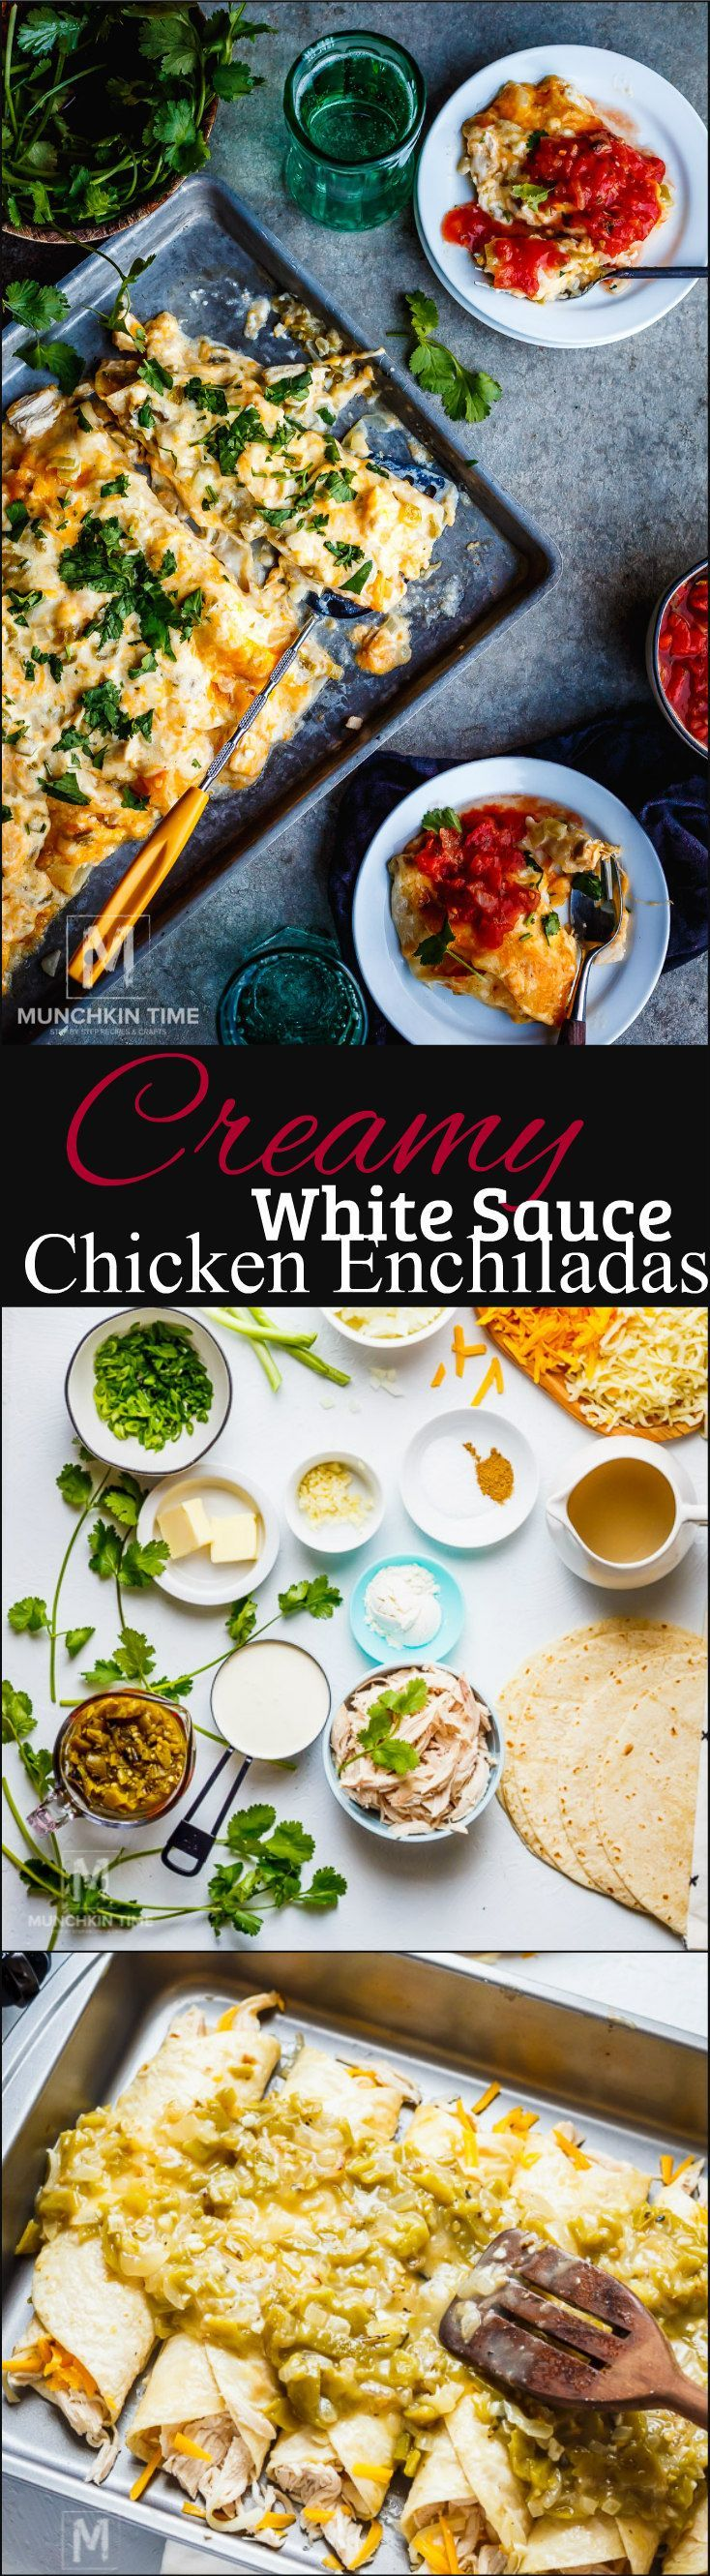 Satisfy YOUR cravings with this delicious Mexican Recipe called Creamy White Sauce Chicken Enchiladas.